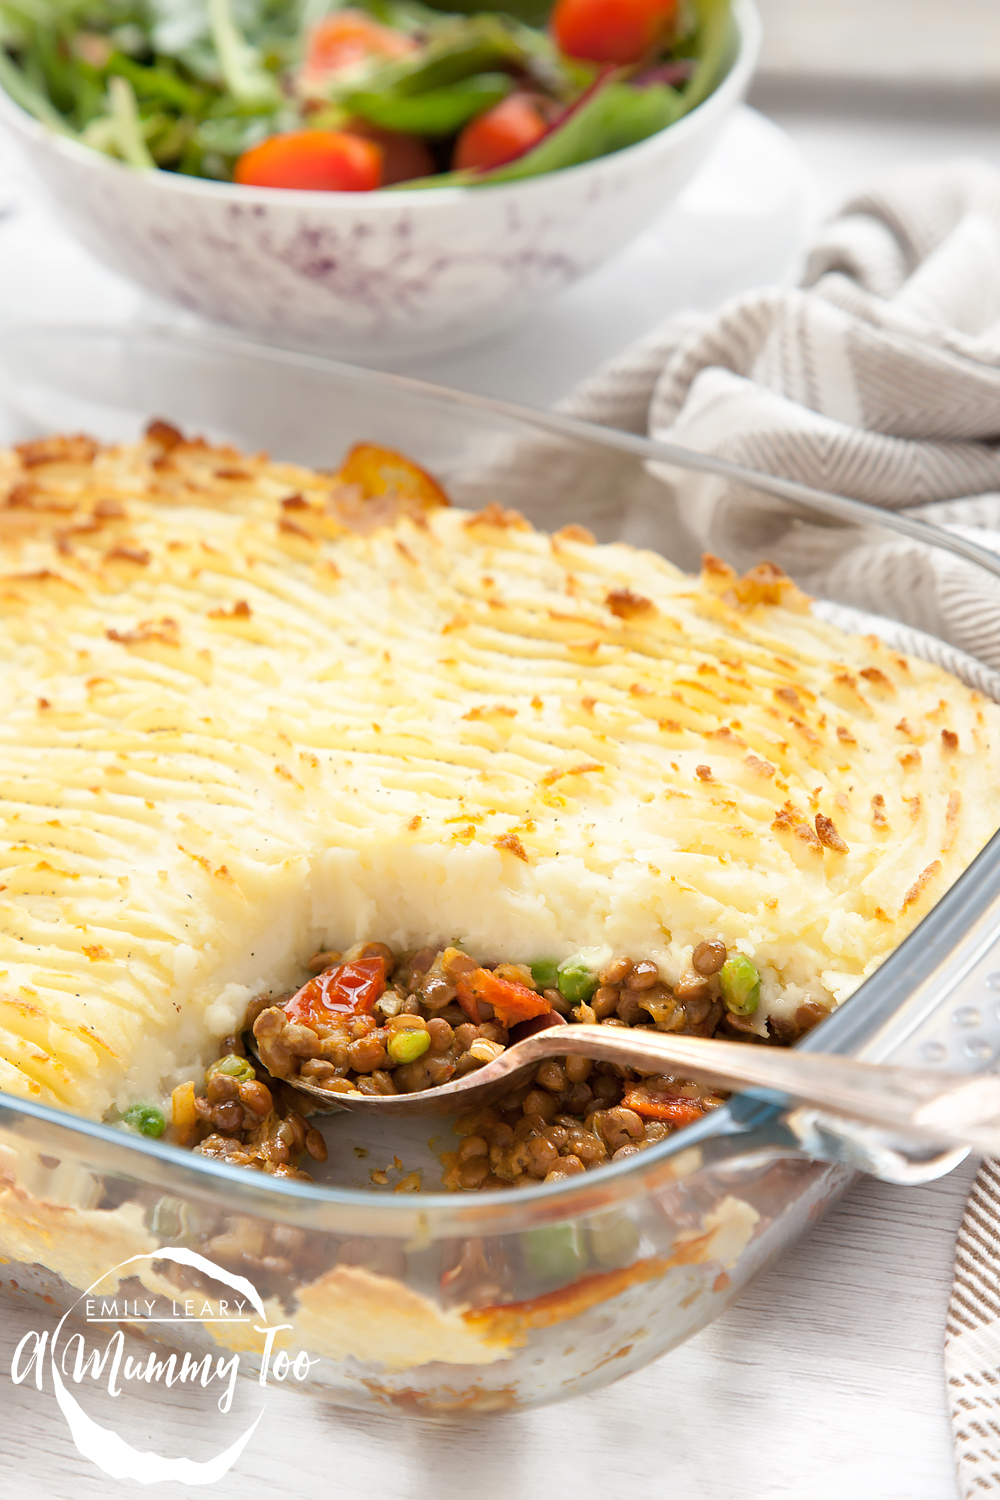 Spicy lentil vegetarian shepherd's pie